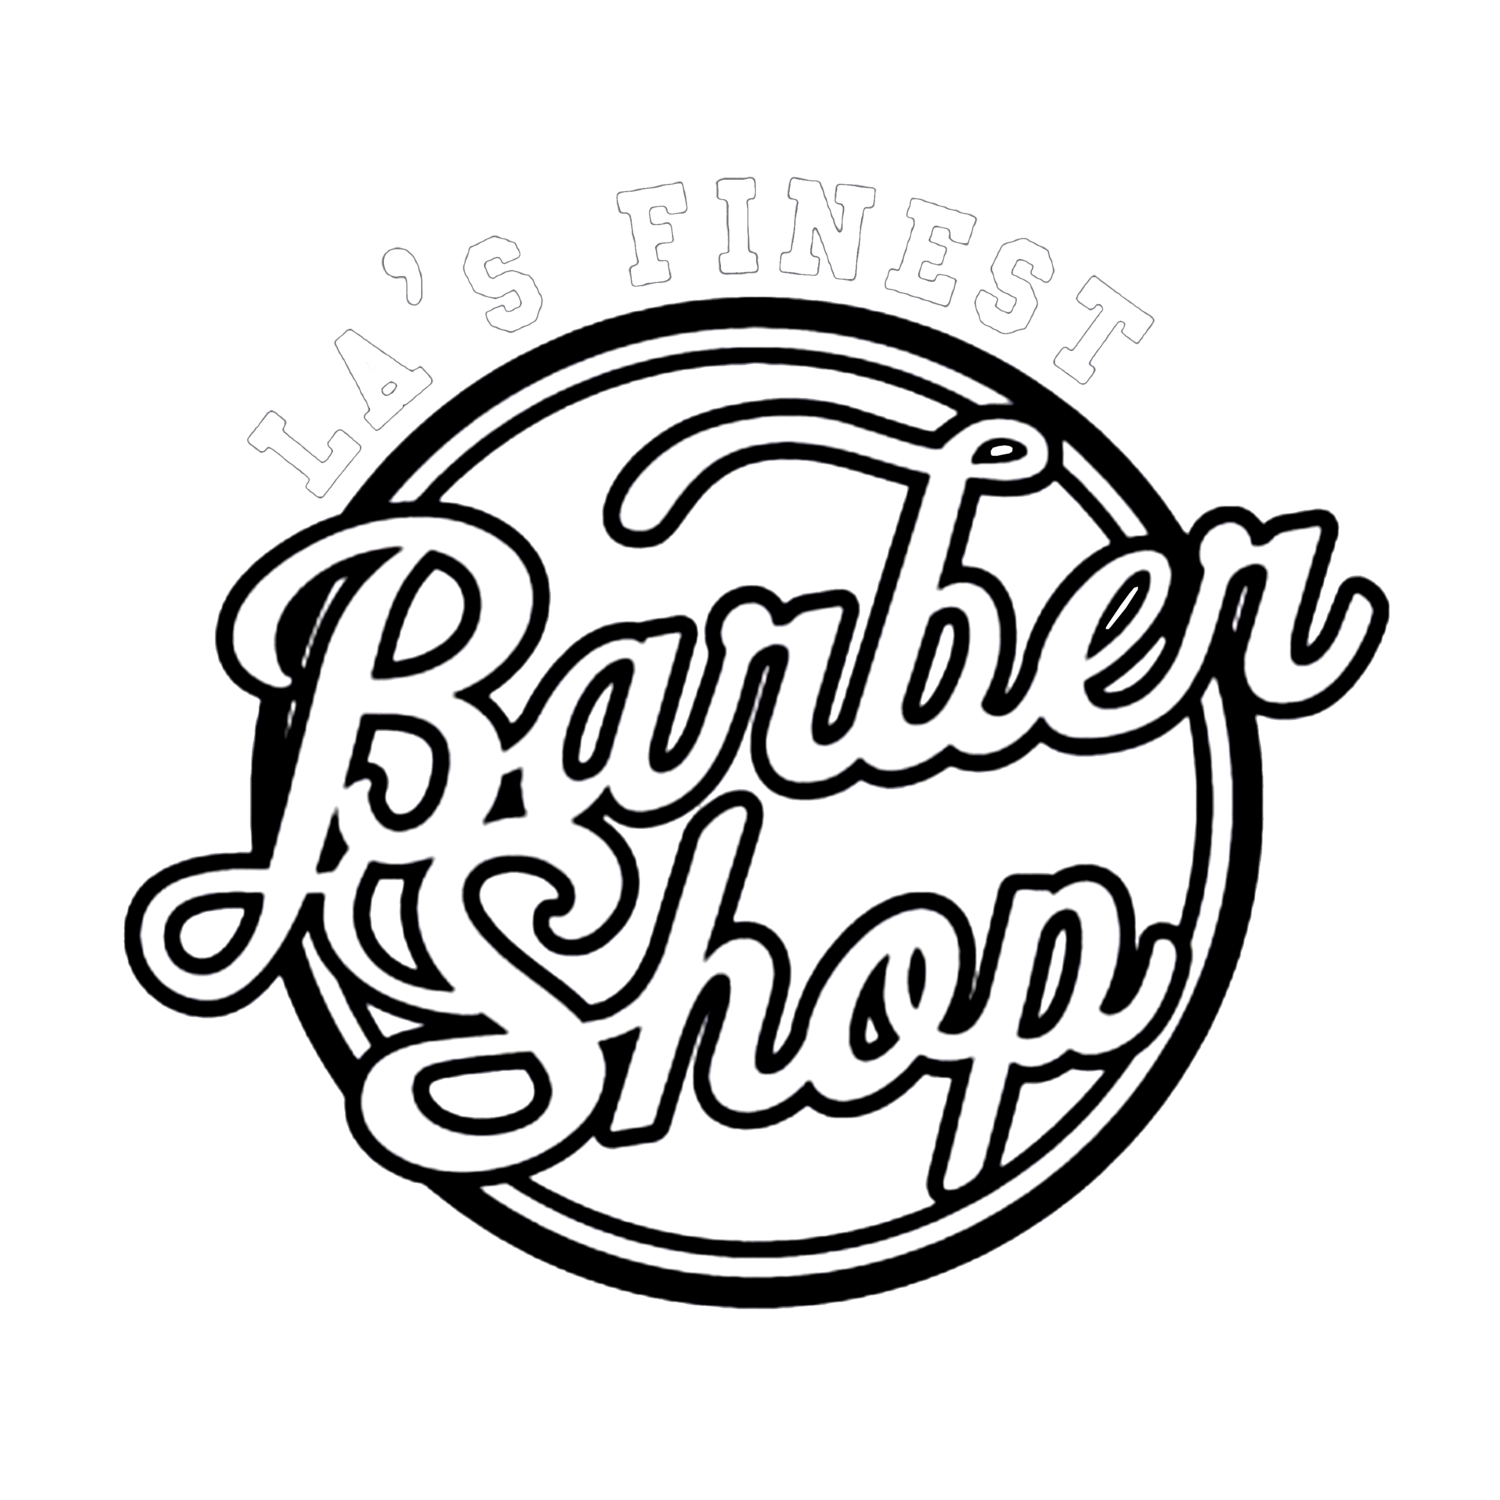 LA's FINEST BARBERSHOP